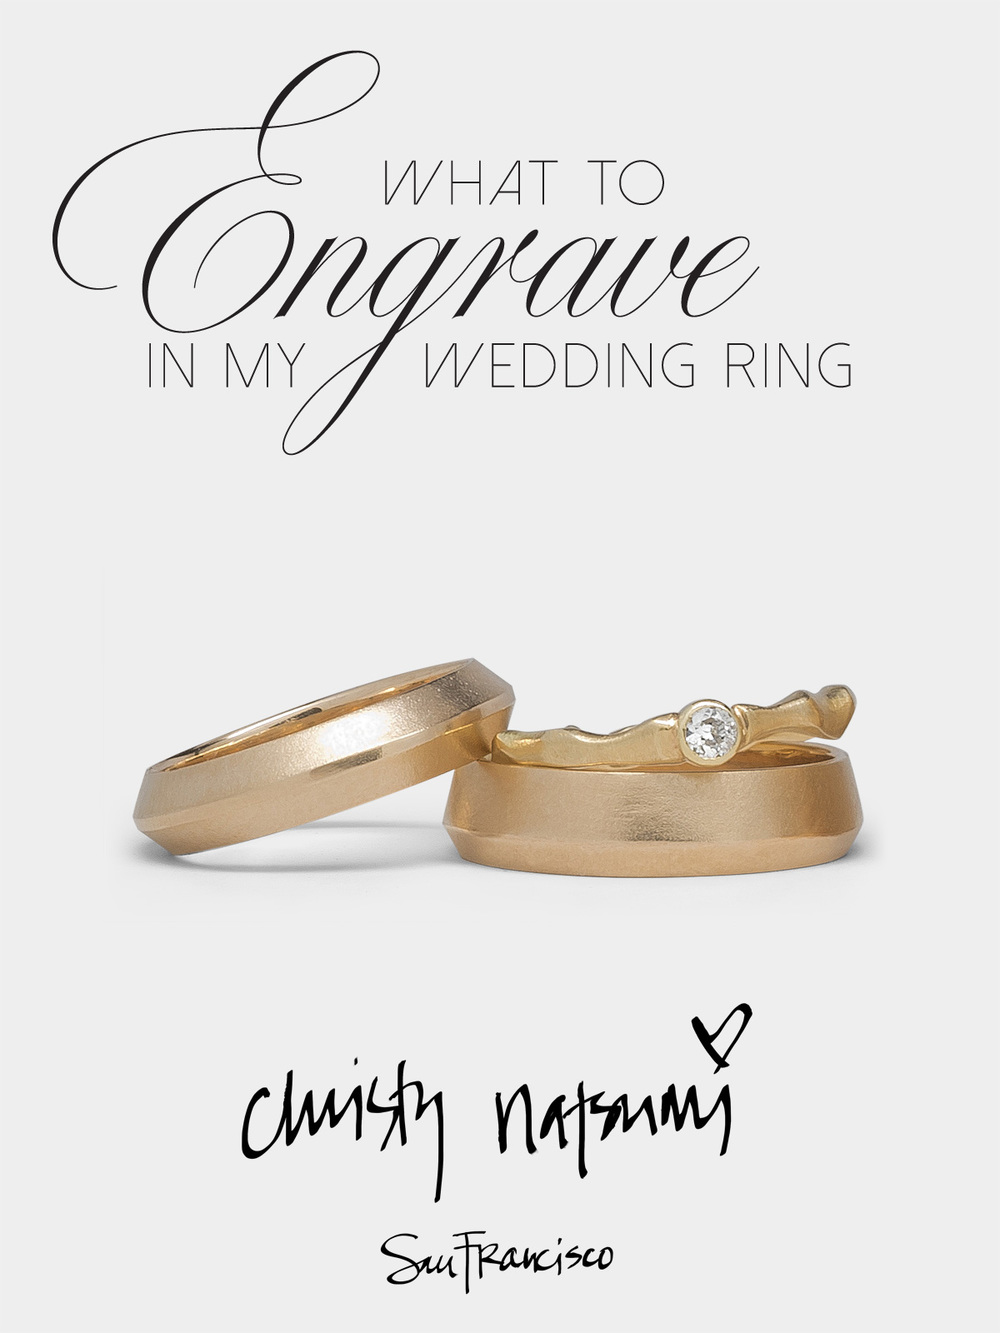 What to engrave in my wedding band_Christy Natsumi